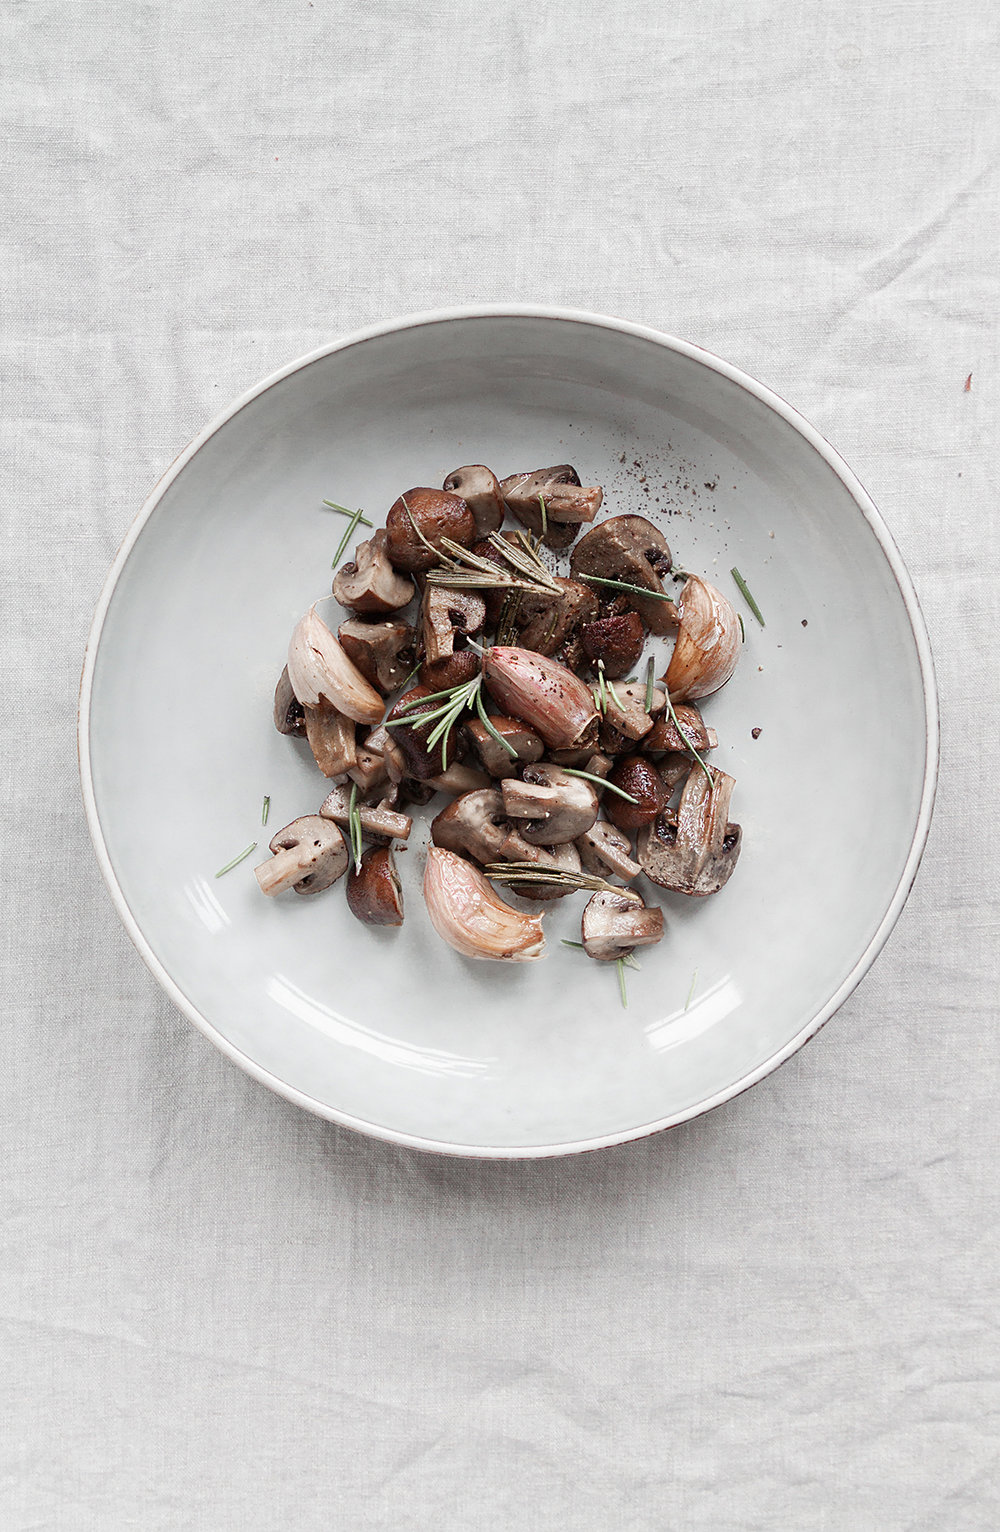 oven roasted chestnut mushrooms with pink garlic and rosemary